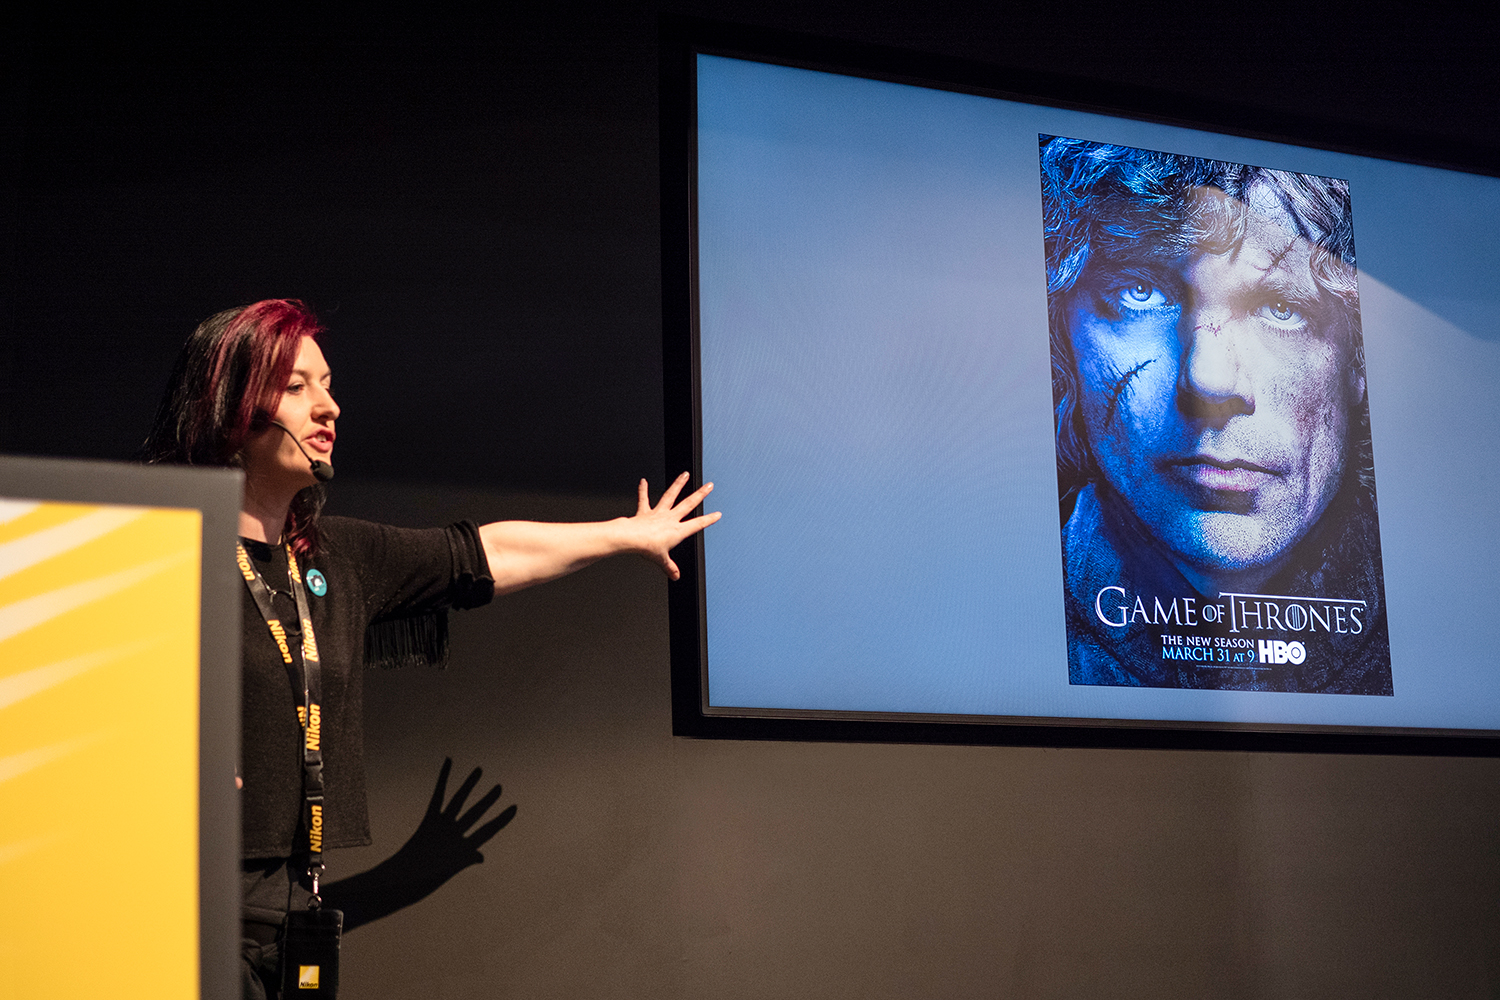 Game of Thrones' stills photographer reminisces on show at TPS talk